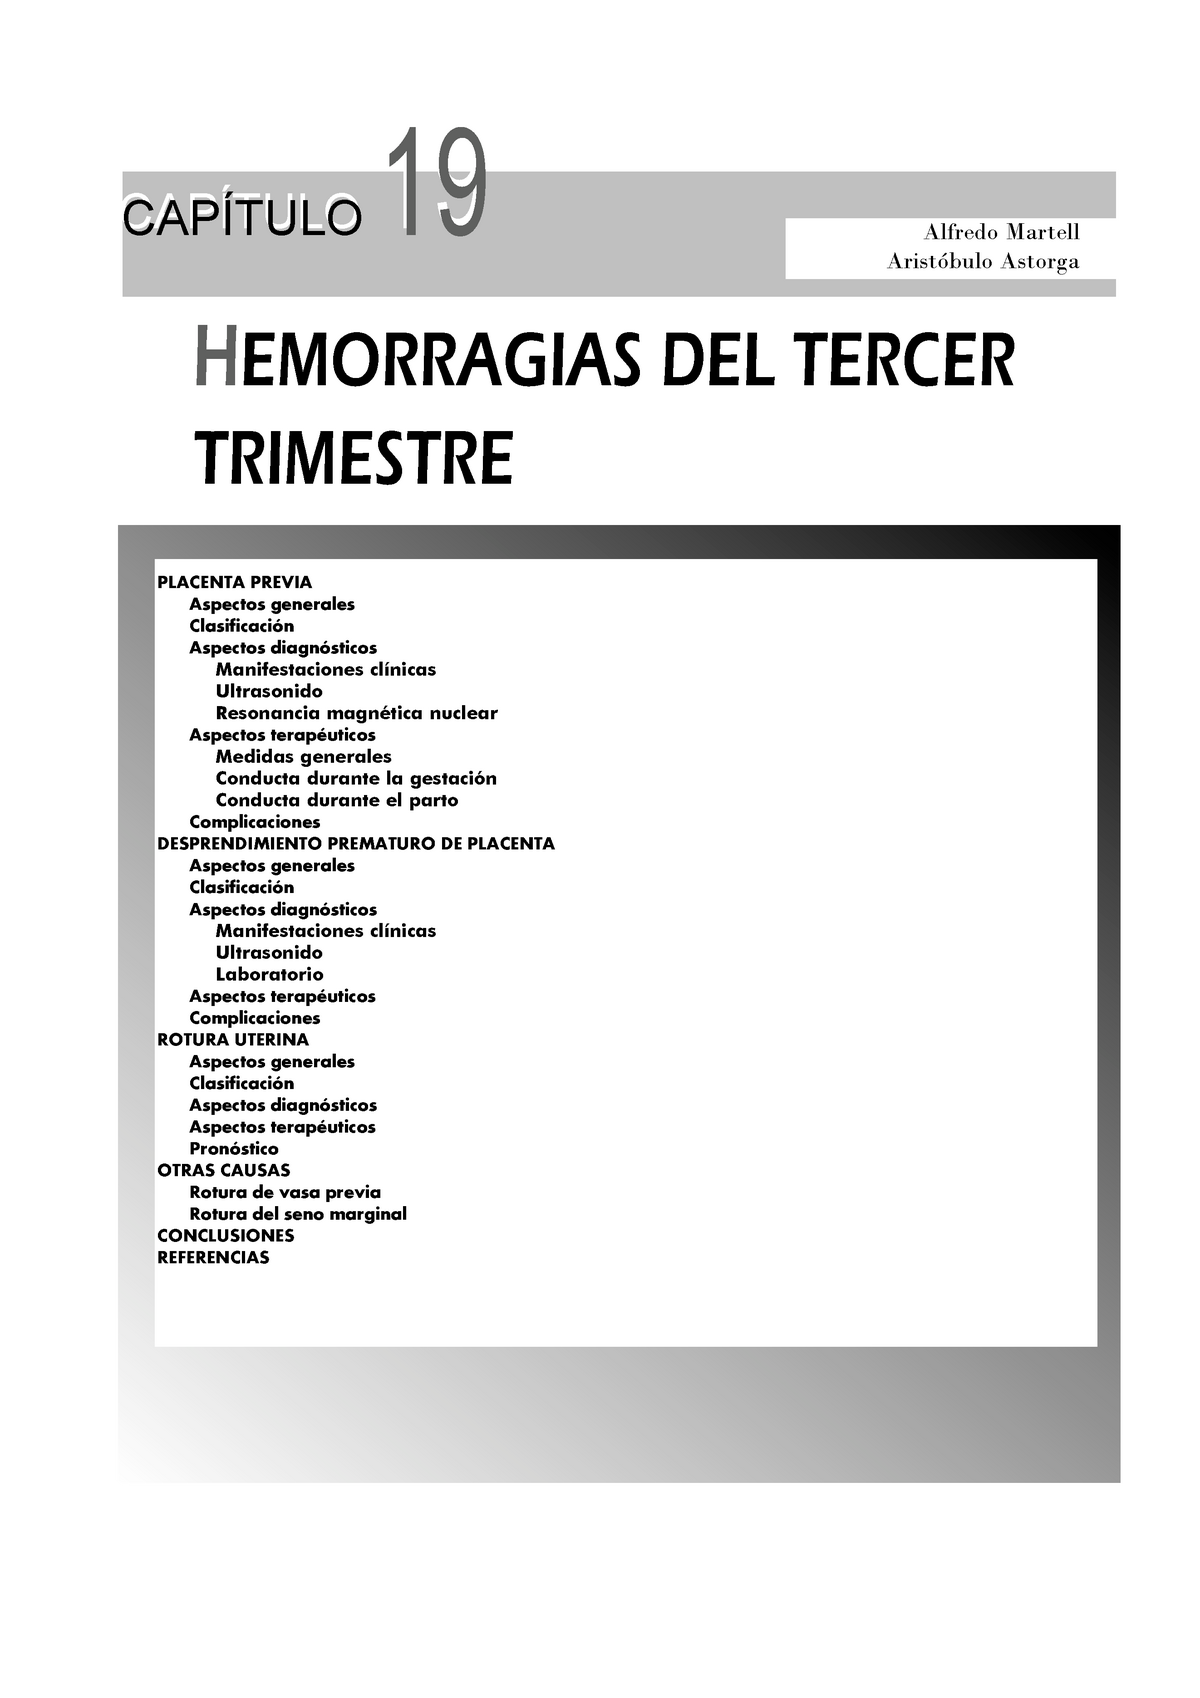 tipos de hemorragias linear unit el briefing trimestre del embarazo